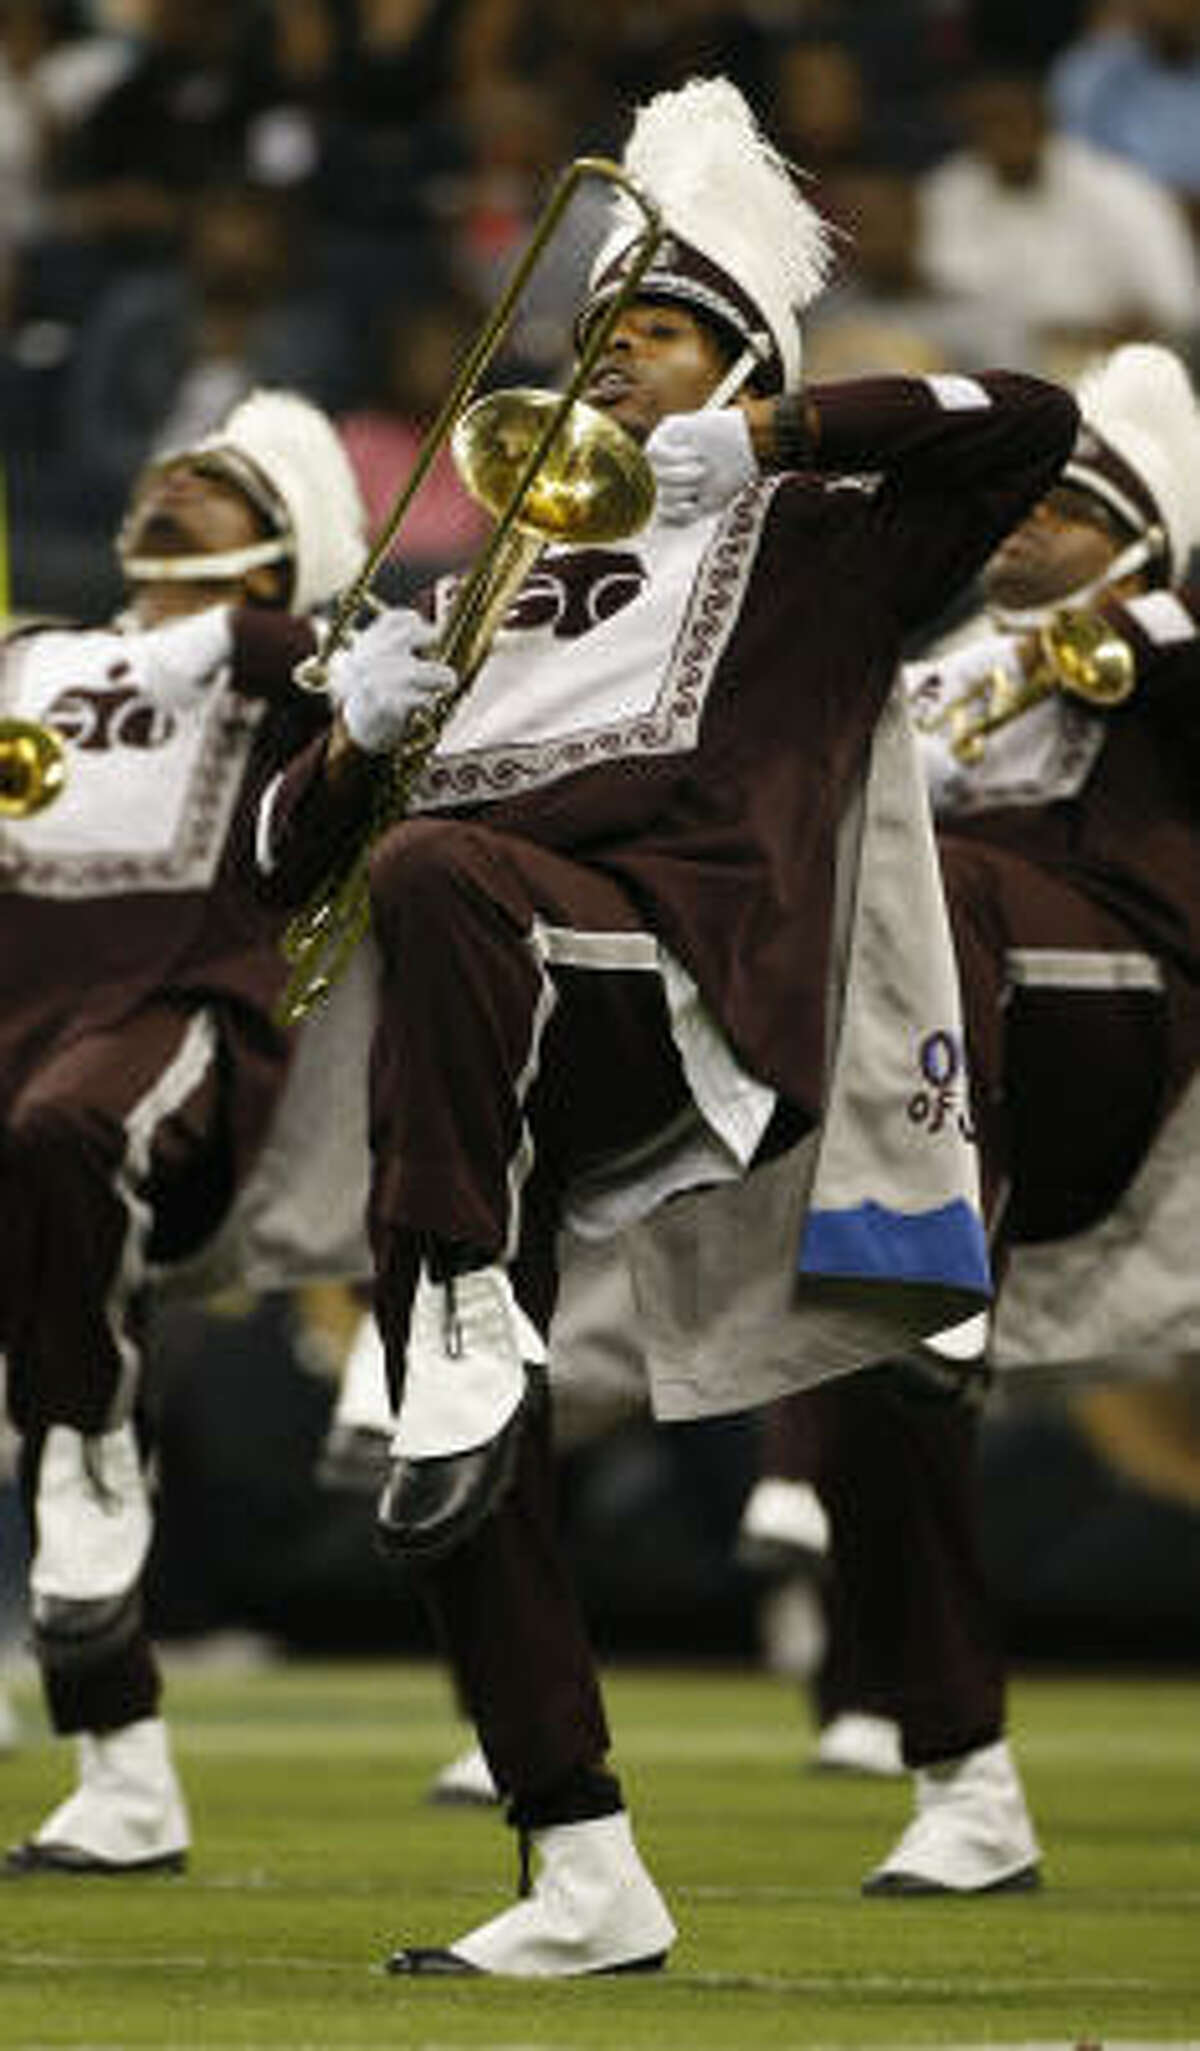 The TSU Ocean of Soul marching band takes the field for the halftime show during the Labor Day Classic.